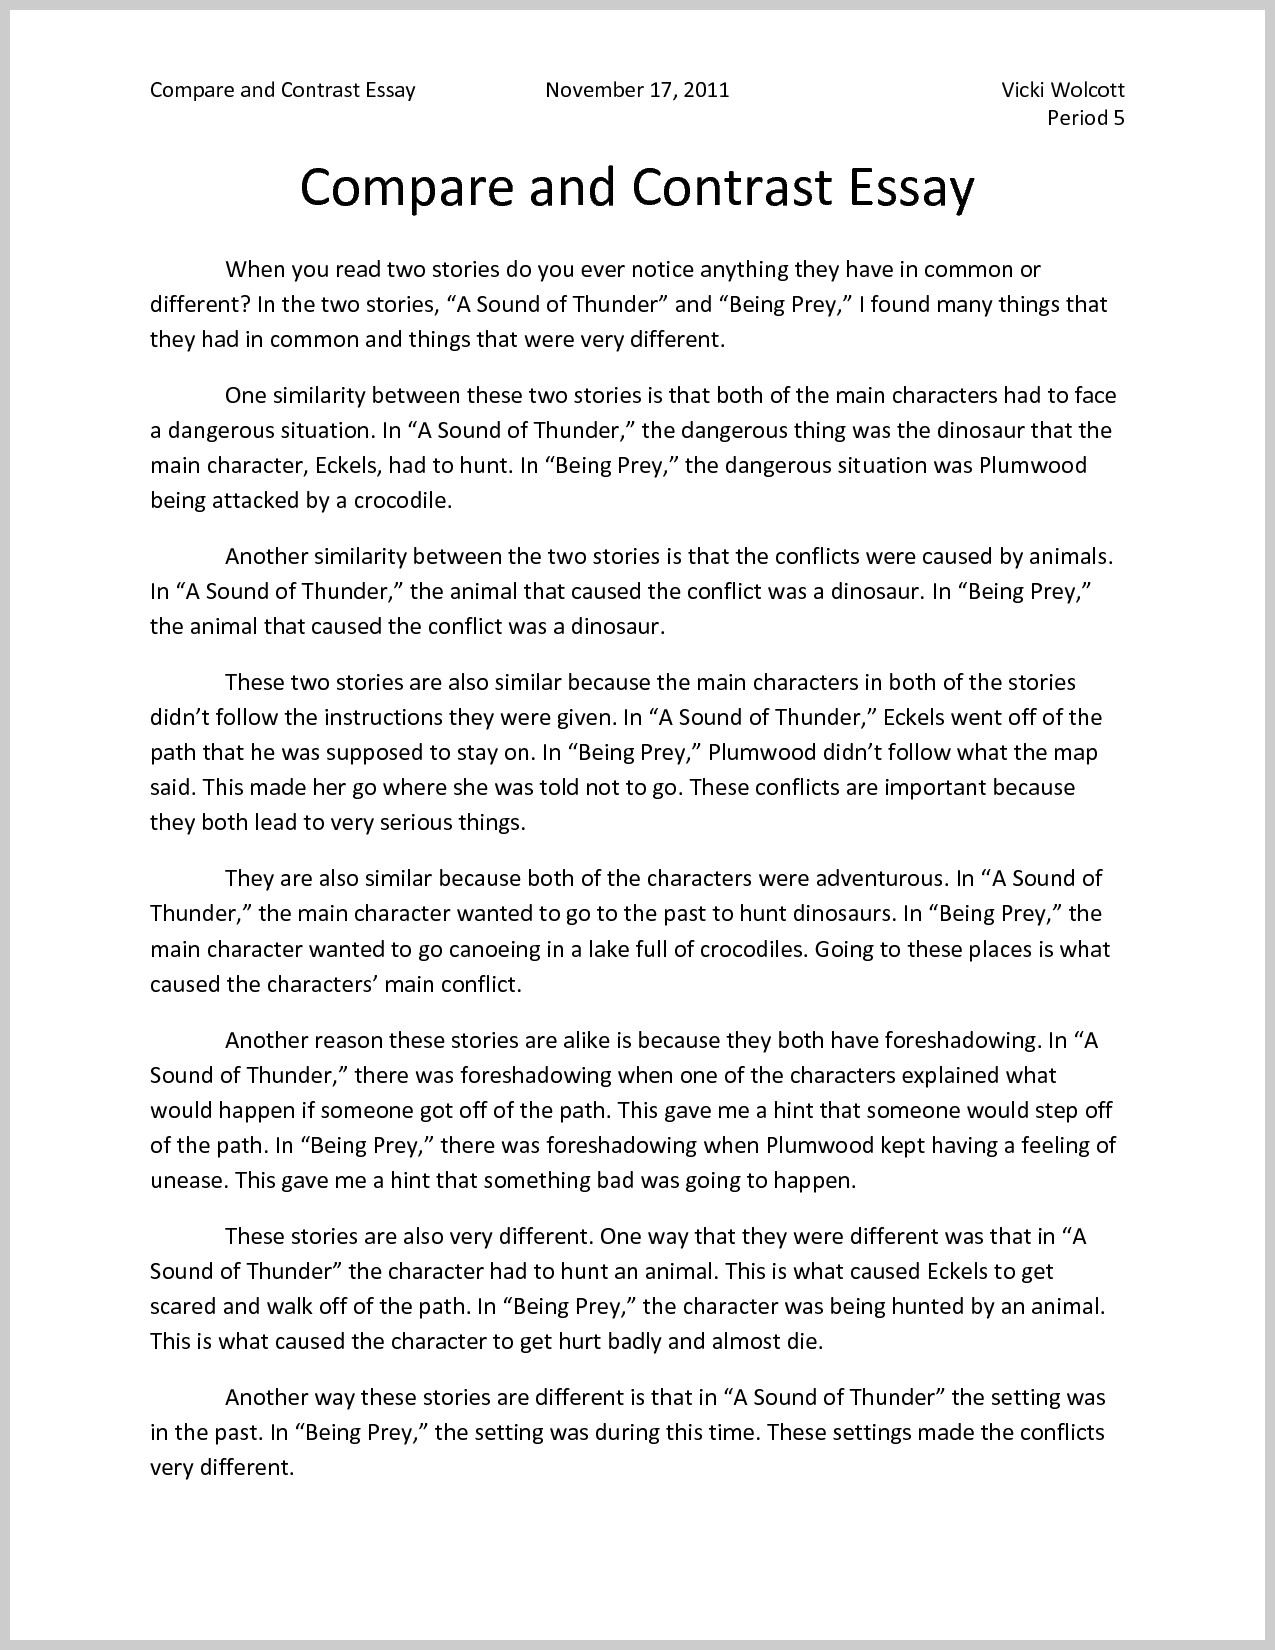 002 What Is Compare And Contrast Essay Example Striking A Does Comparison/contrast Look Like Should Provide Good Topic Sentence For Full